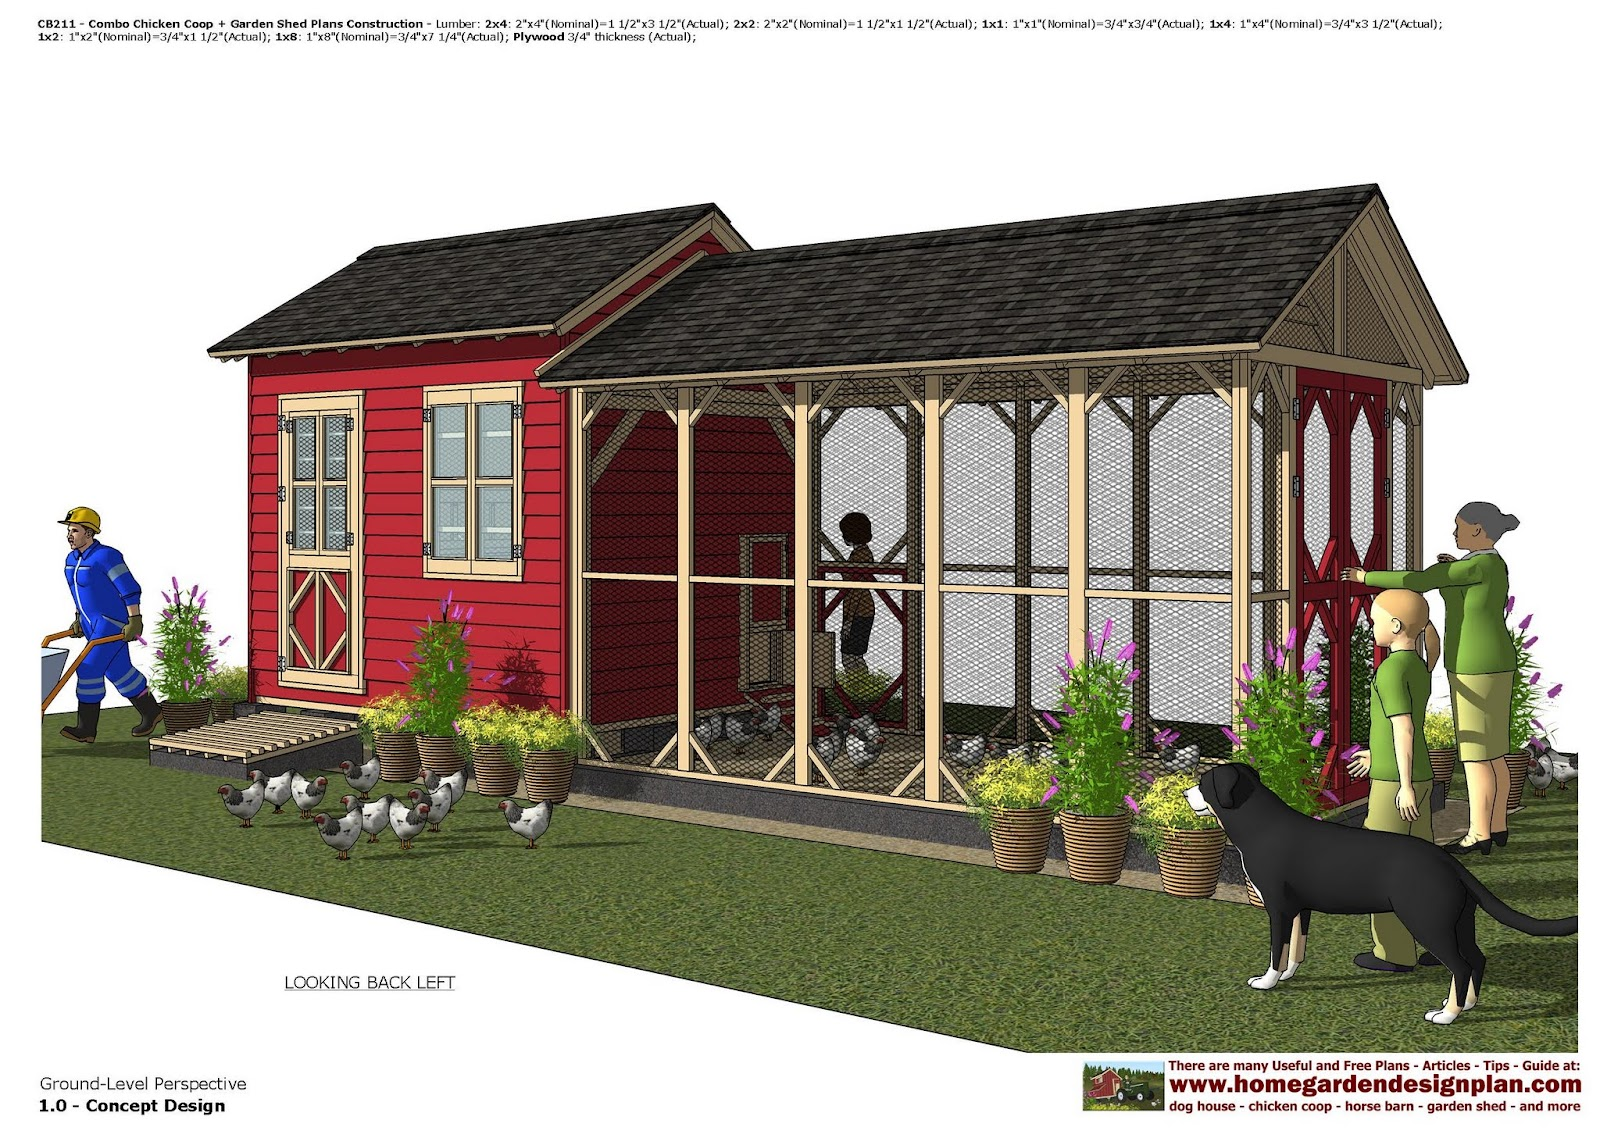 Garden Sheds 2 X 3 home garden plans: cb211 _ combo chicken coop + garden shed plans